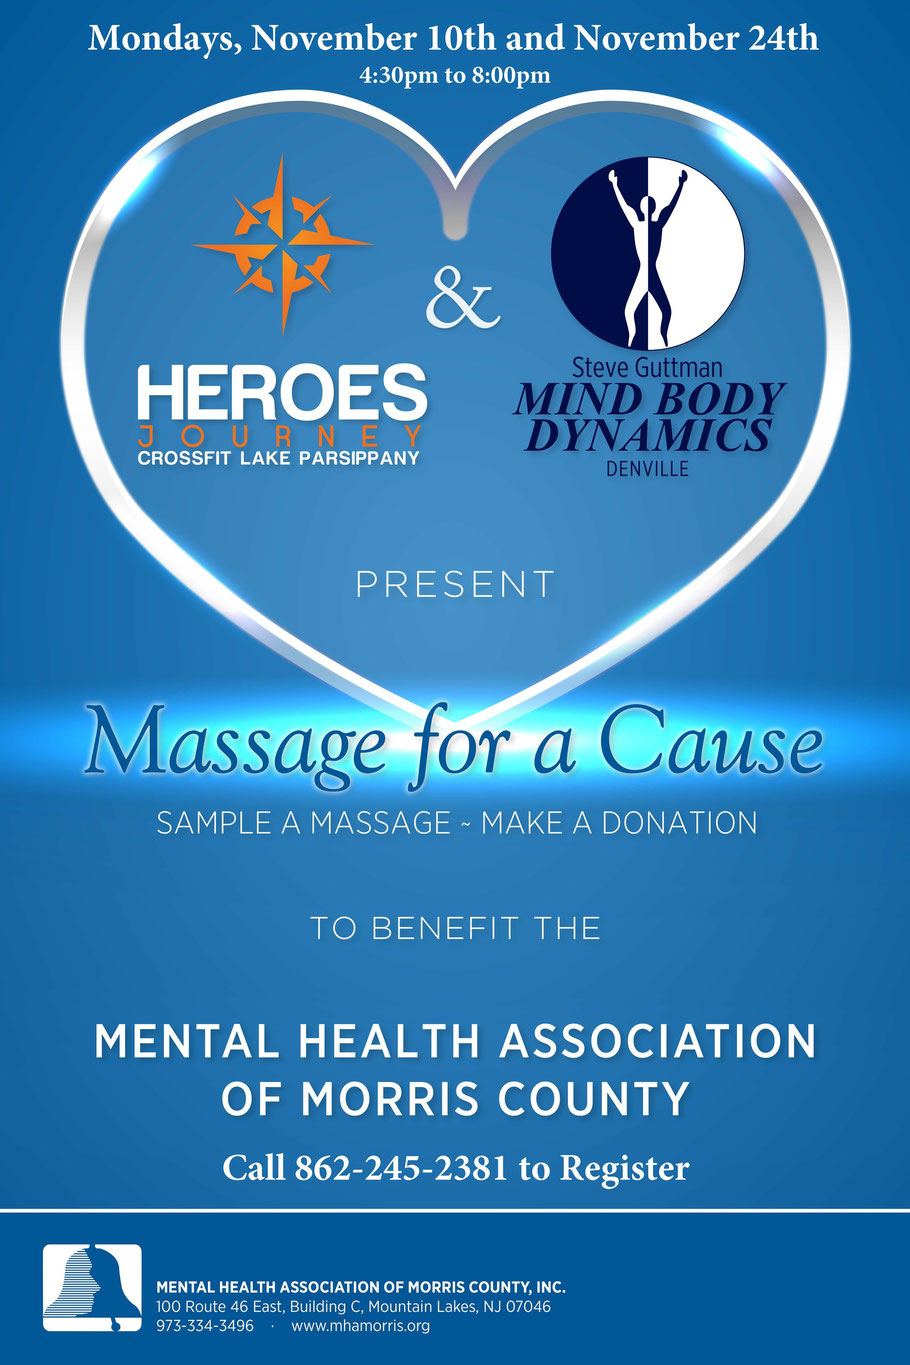 Massage for a Cause to benefit the Mental Health Association of Morris County